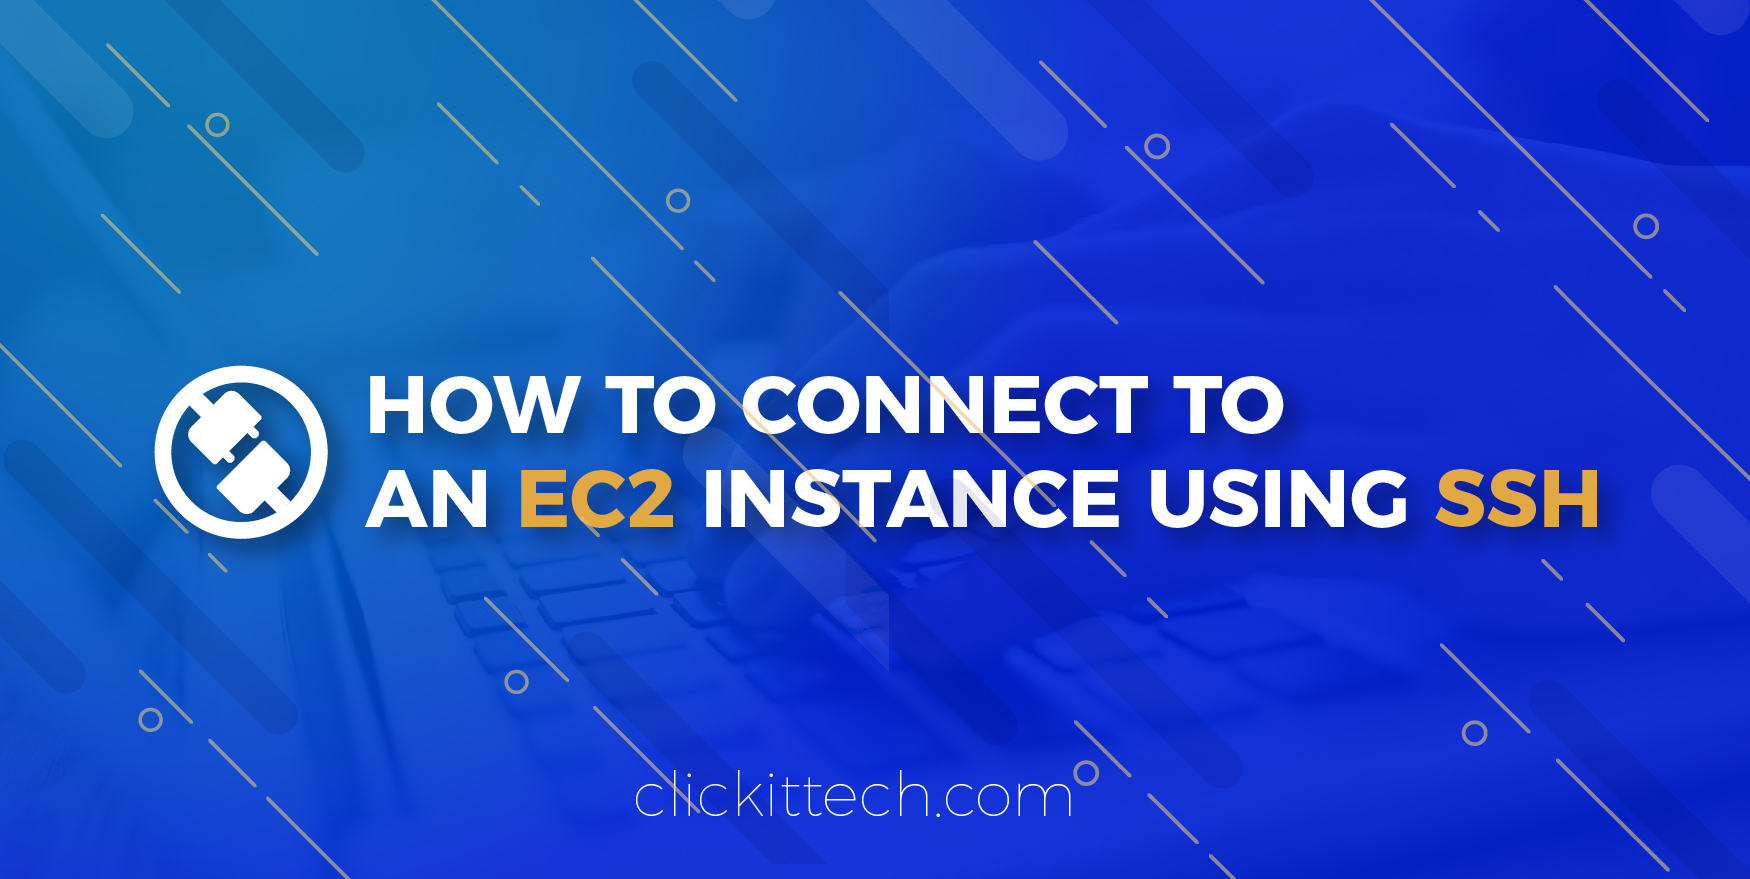 How to connect to an ec2 instance using SSH - Clickittech